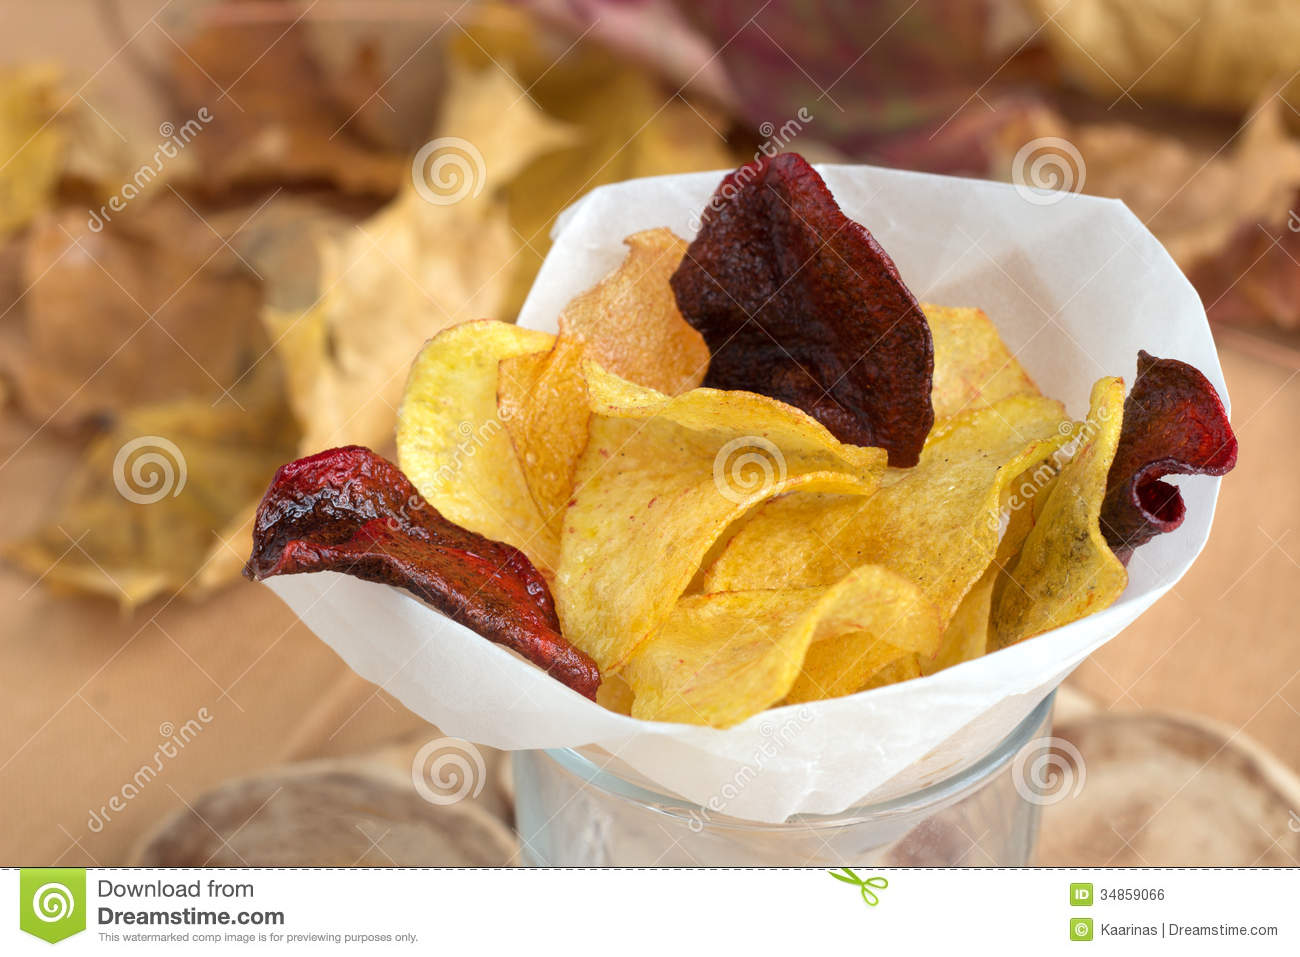 monopoly for the potato chip industry essay 2018/7/15 brought to europe from the new world by spanish explorers, the lowly potato gave rise to modern industrial agriculture  how the potato changed the world brought to europe from the new world by spanish explorers, the lowly potato.